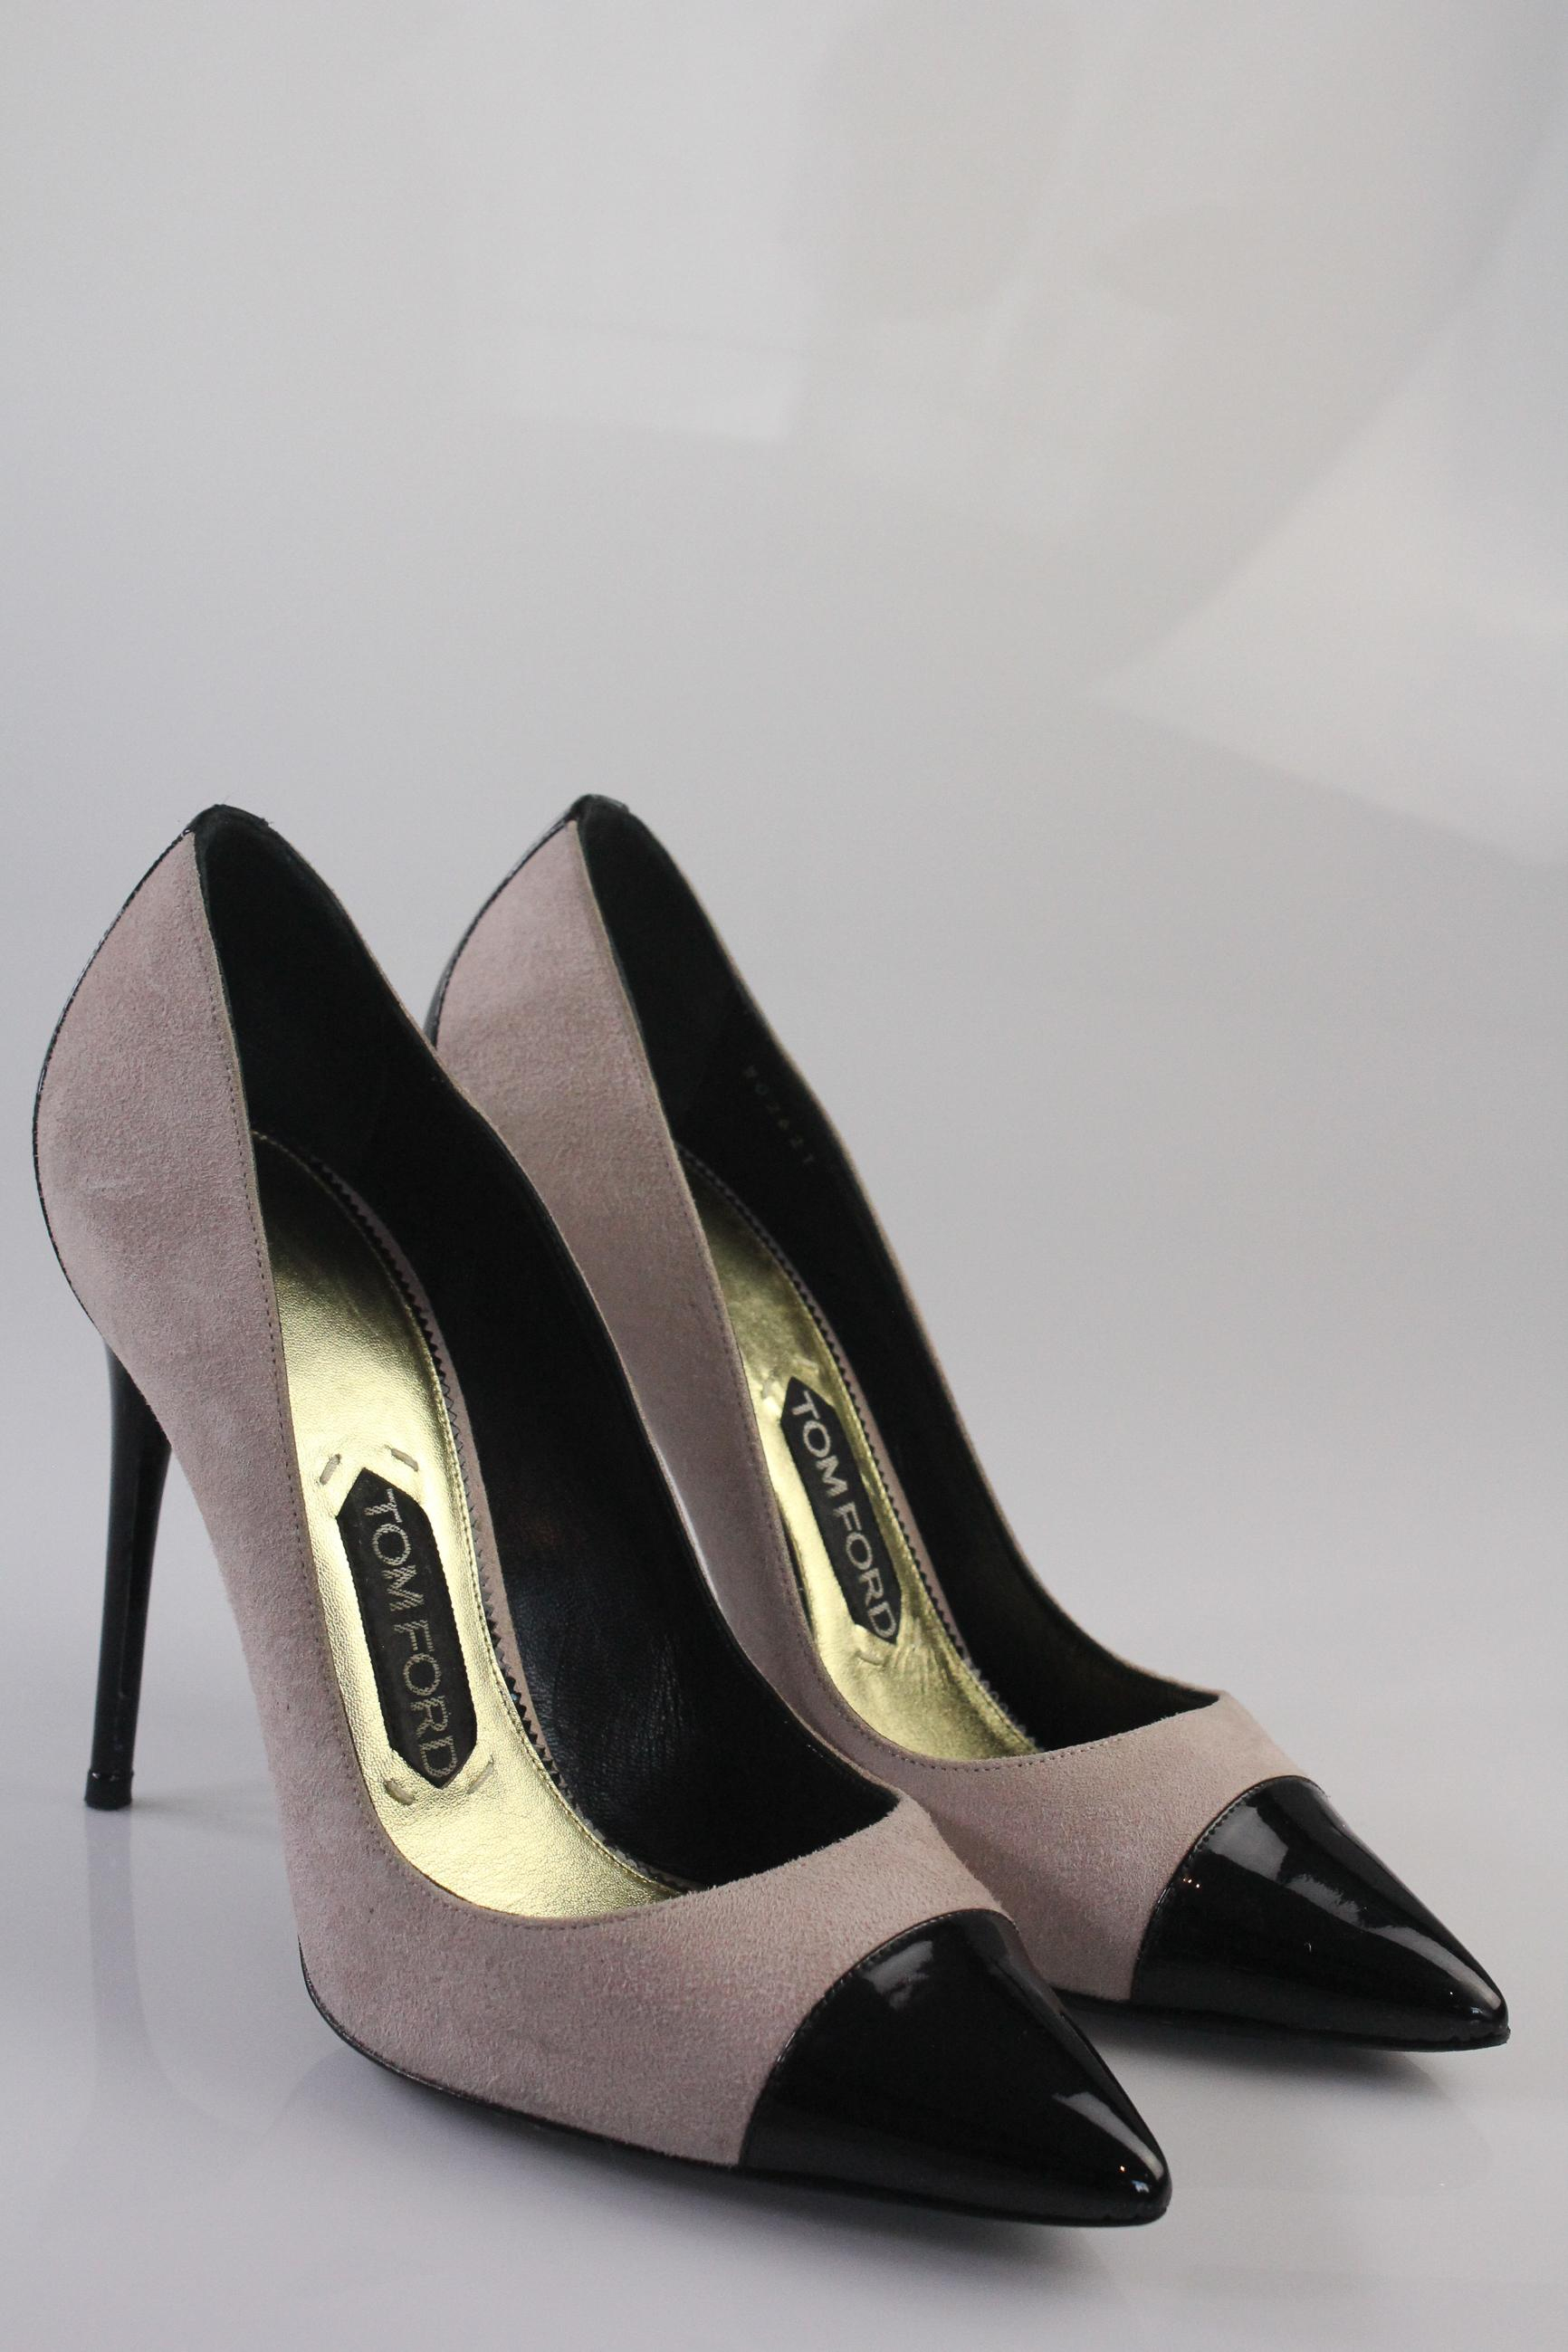 women kylie ford for tom c kendall nordstrom womens shoes heels high heel